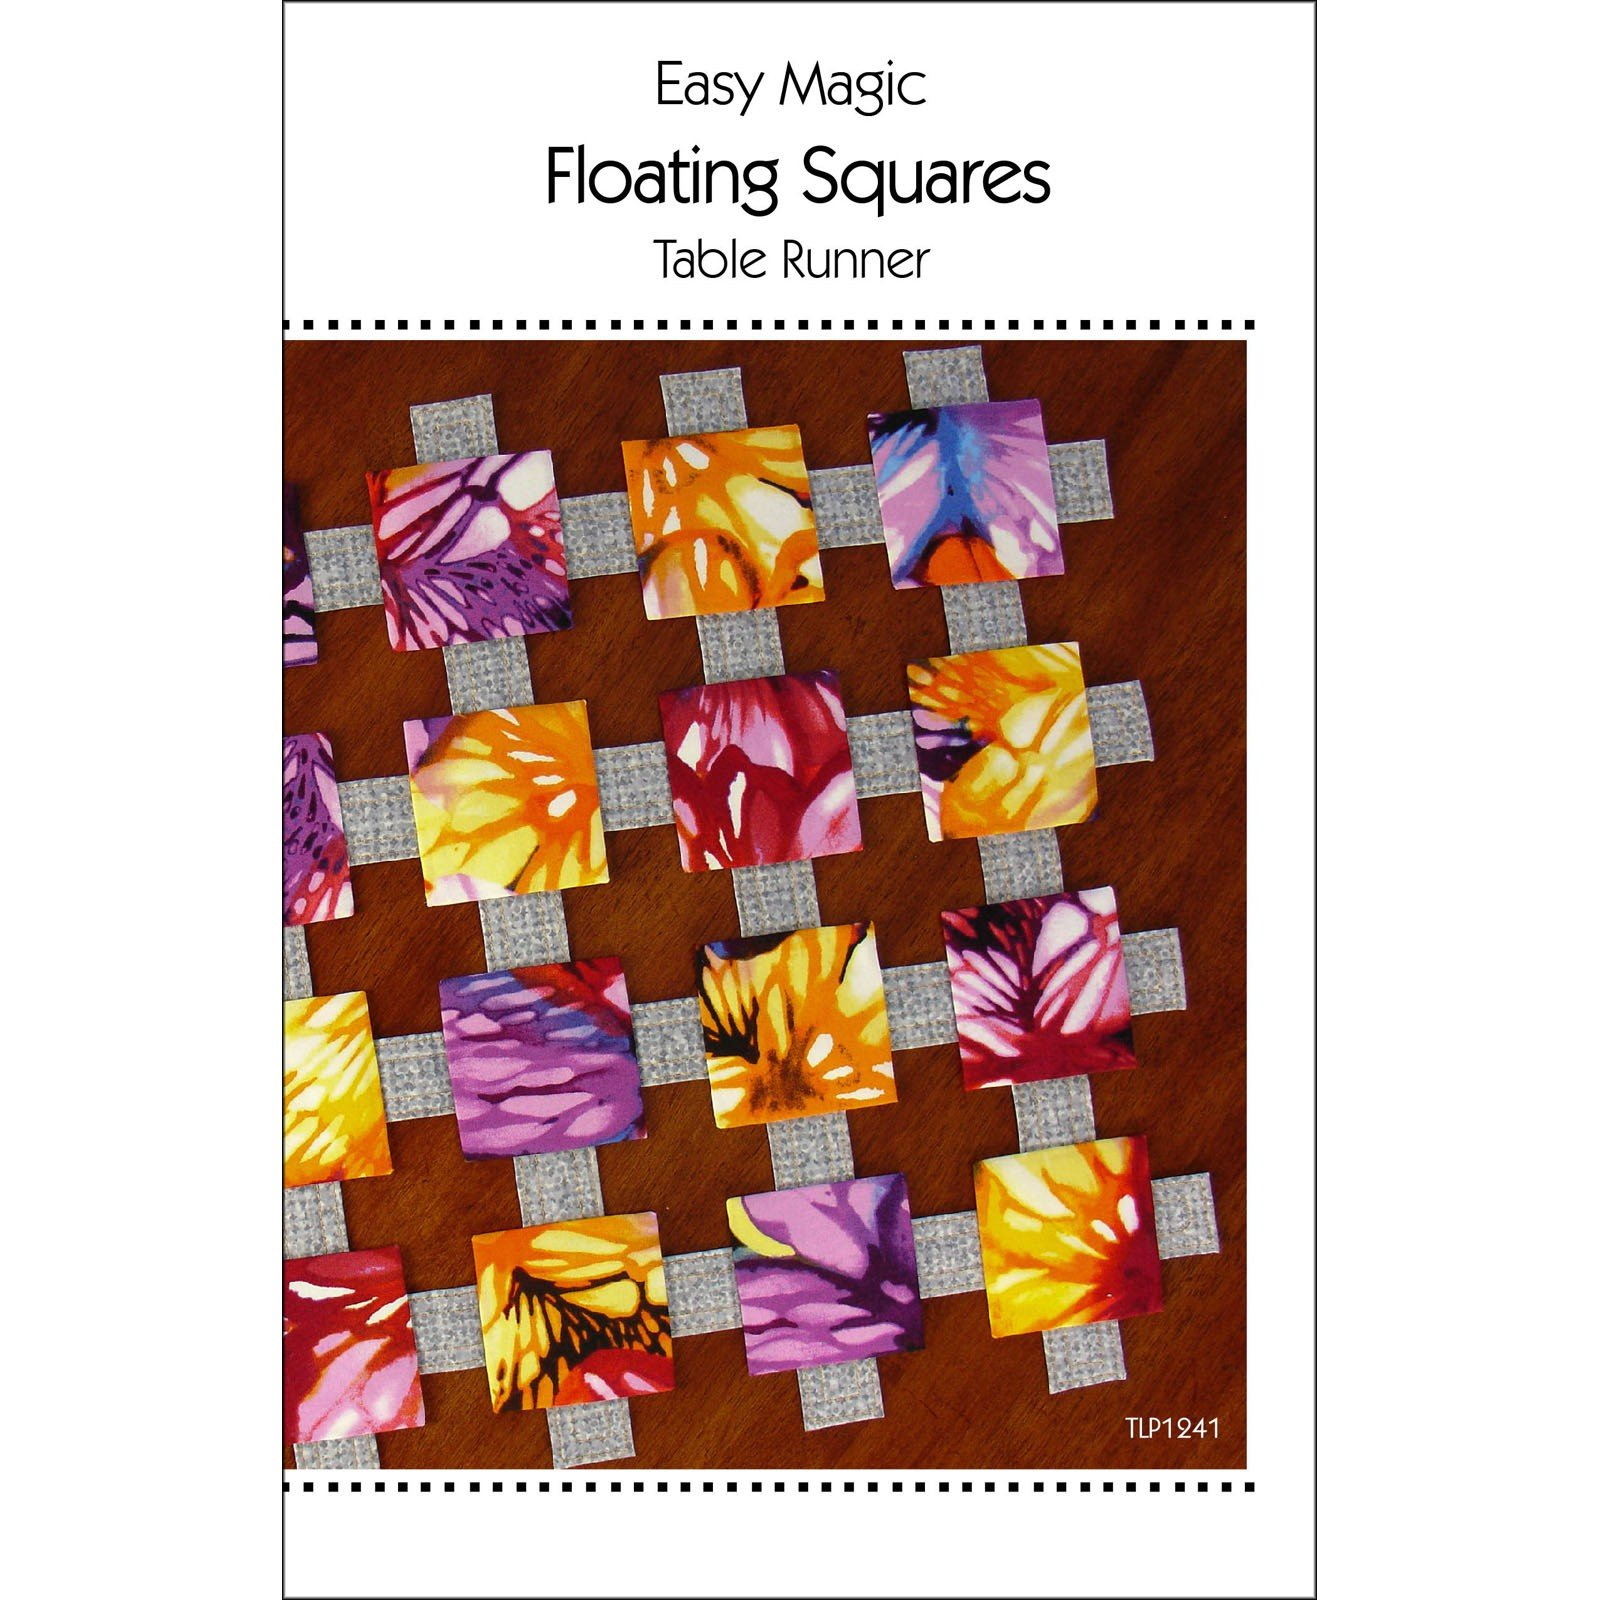 Easy Magic Floating Squares Table Runner